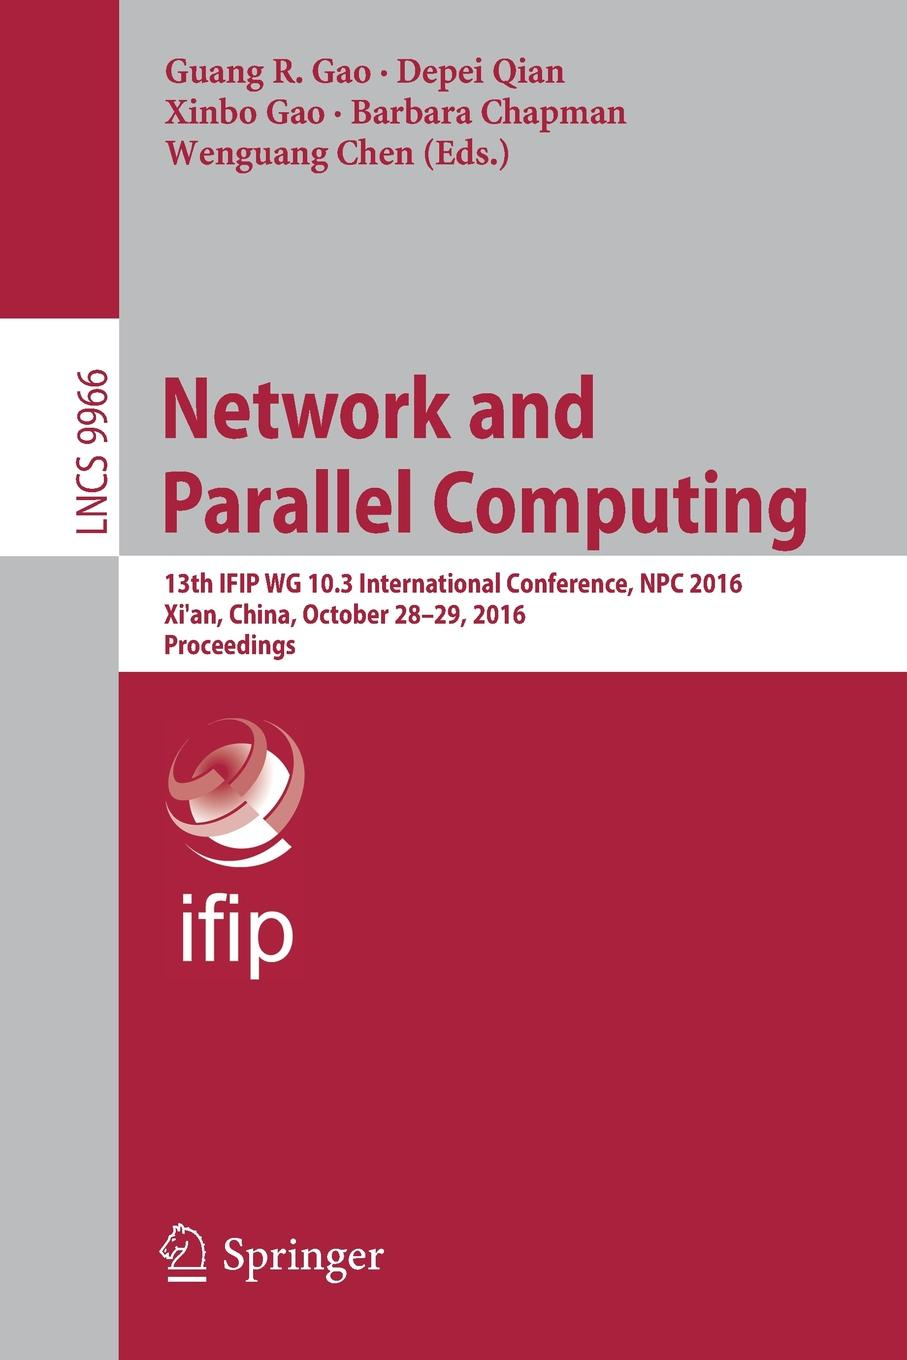 Network and Parallel Computing. 13th IFIP WG 10.3 International Conference, NPC 2016, Xi'an, China, October 28-29, 2016, Proceedings fayez gebali algorithms and parallel computing